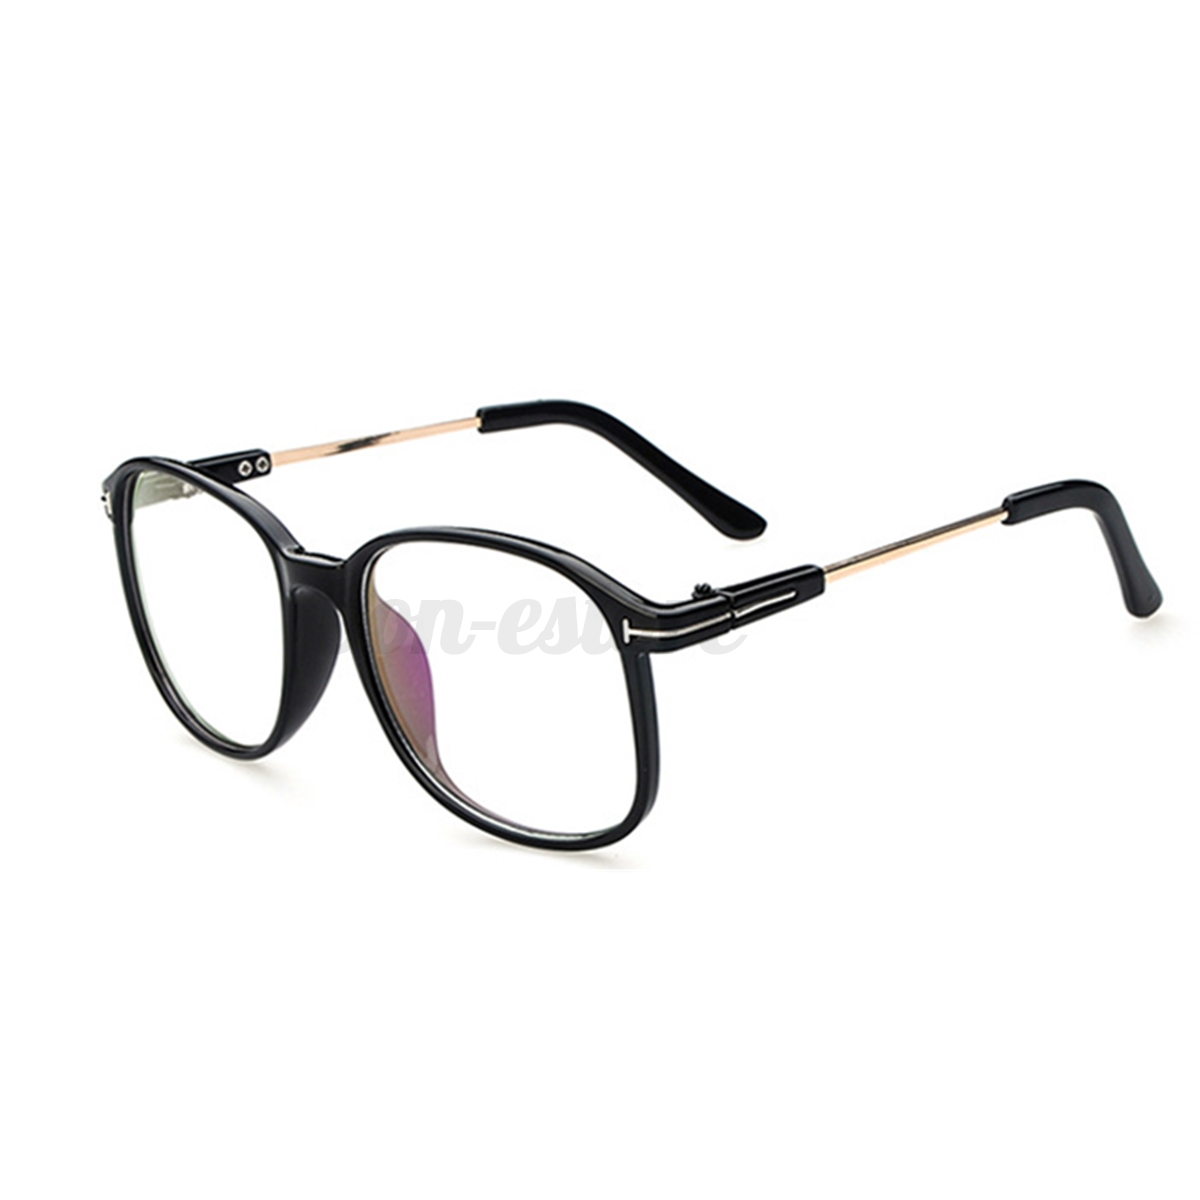 Large Frame Fashion Eyeglasses Oversized Clear Lens ...